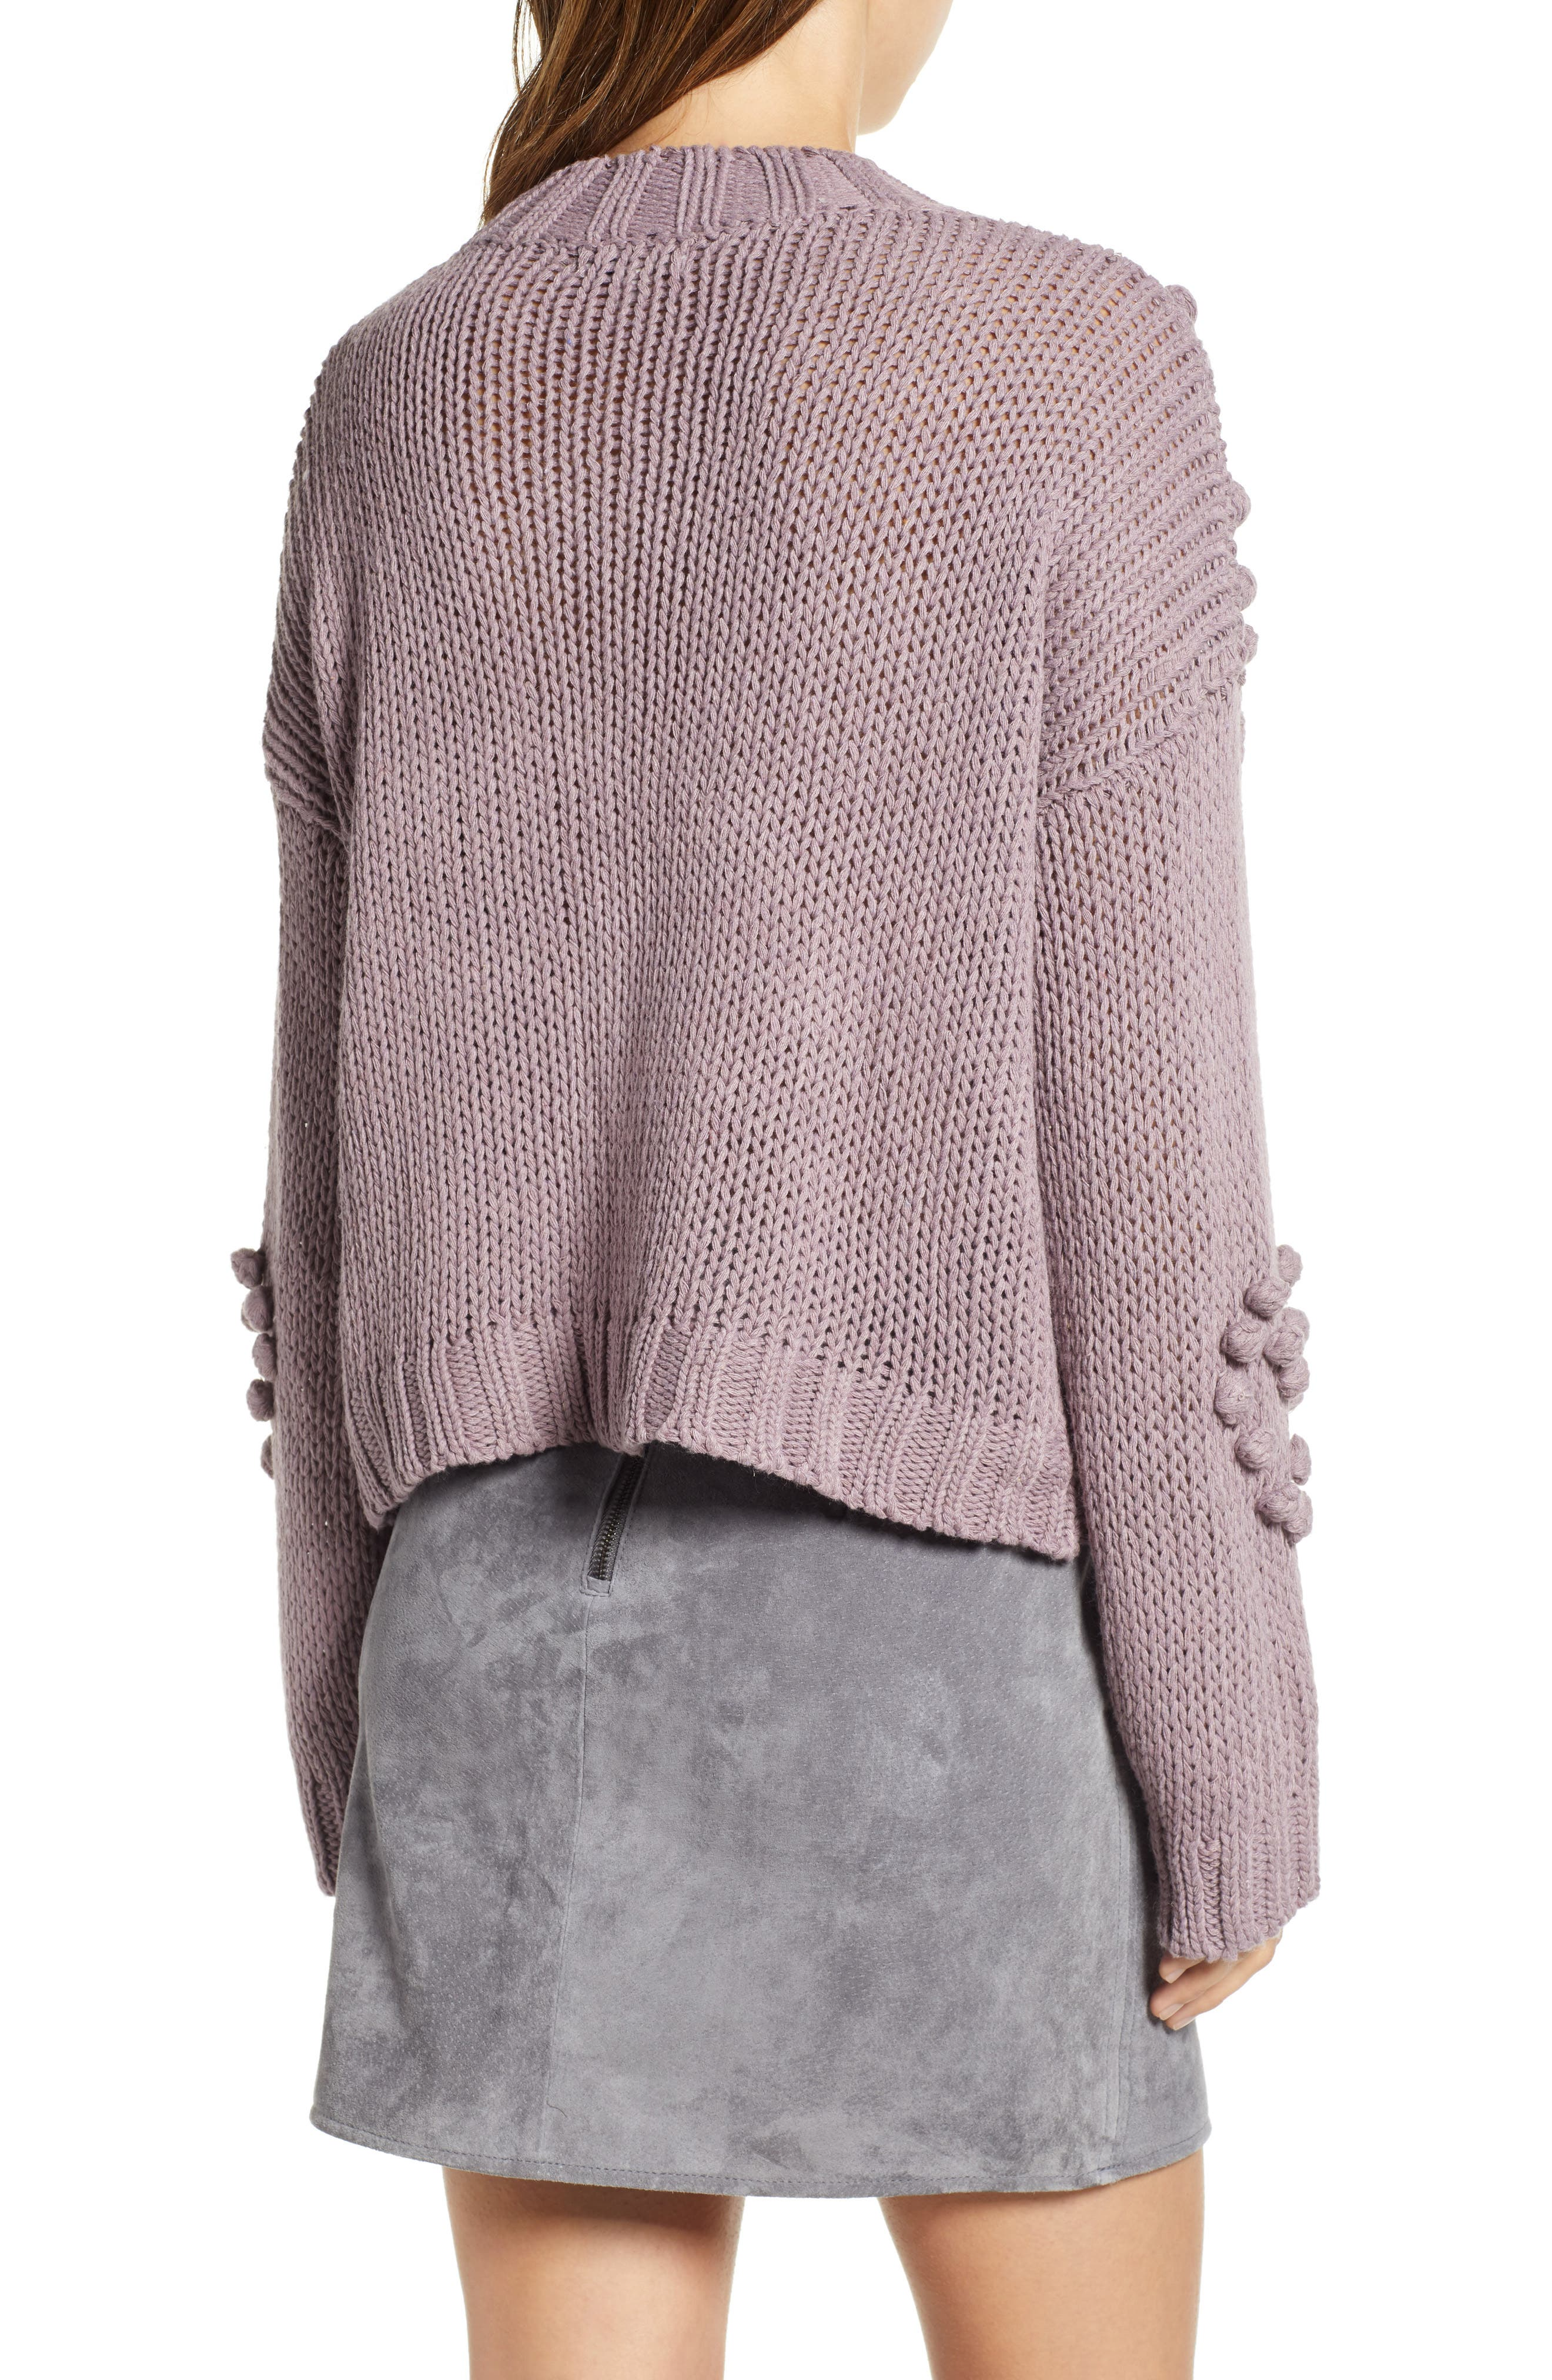 Placement Knot Knit Sweater,                             Alternate thumbnail 2, color,                             300